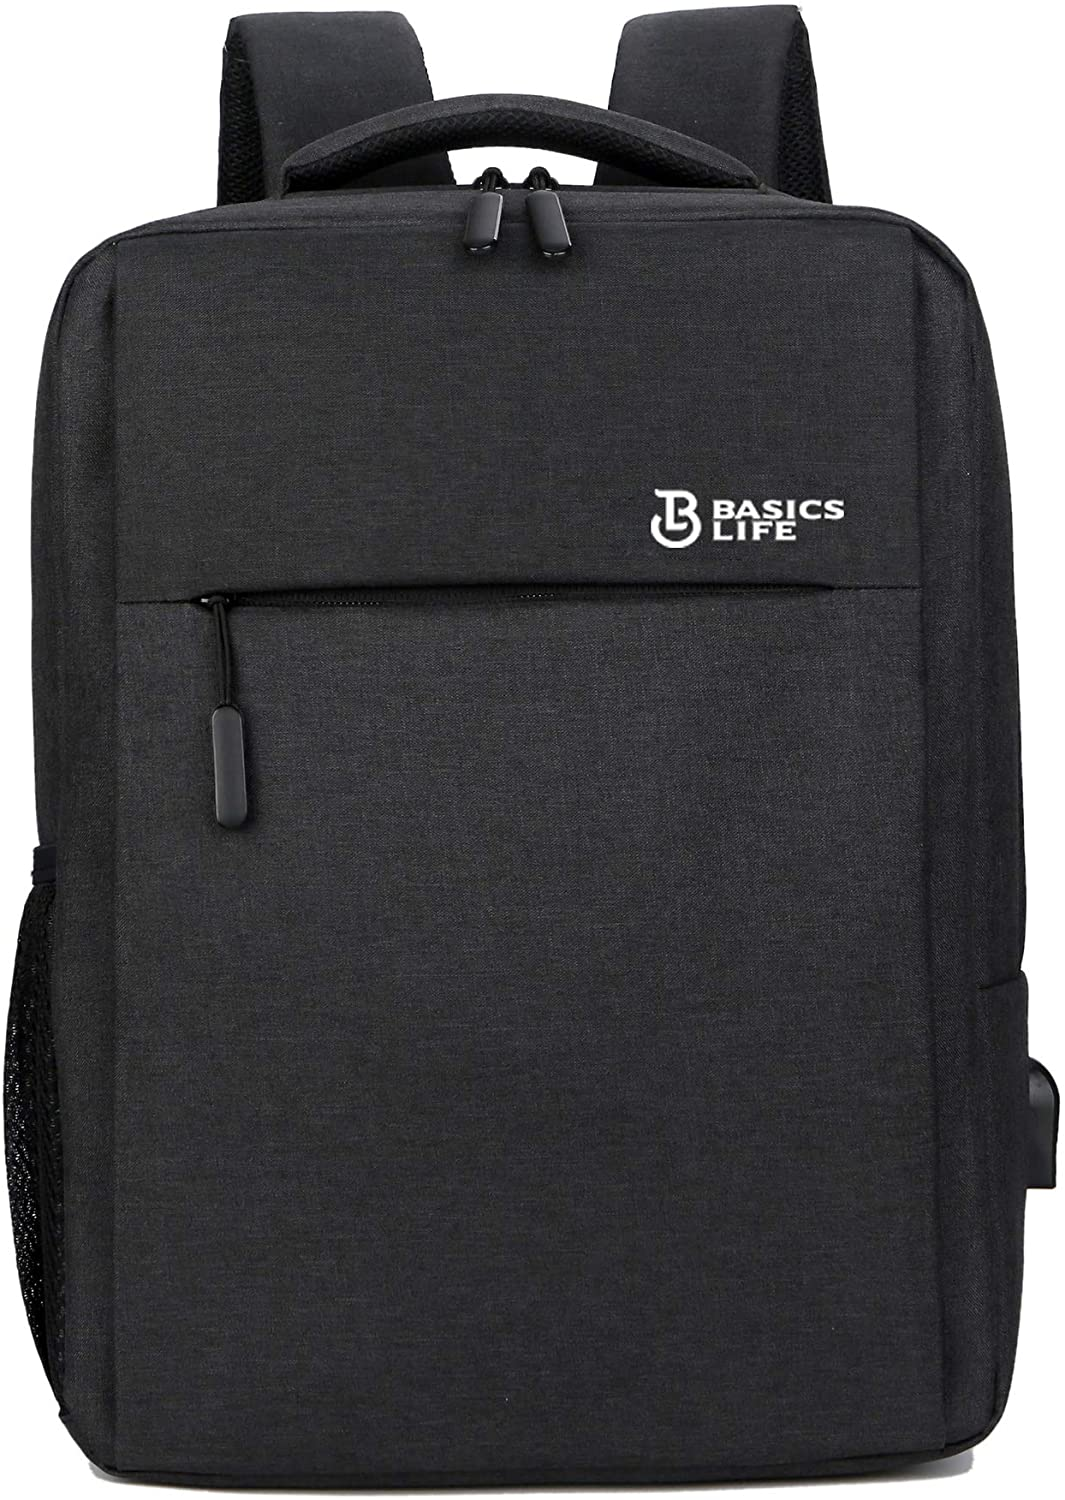 BL Travel Laptop Backpack